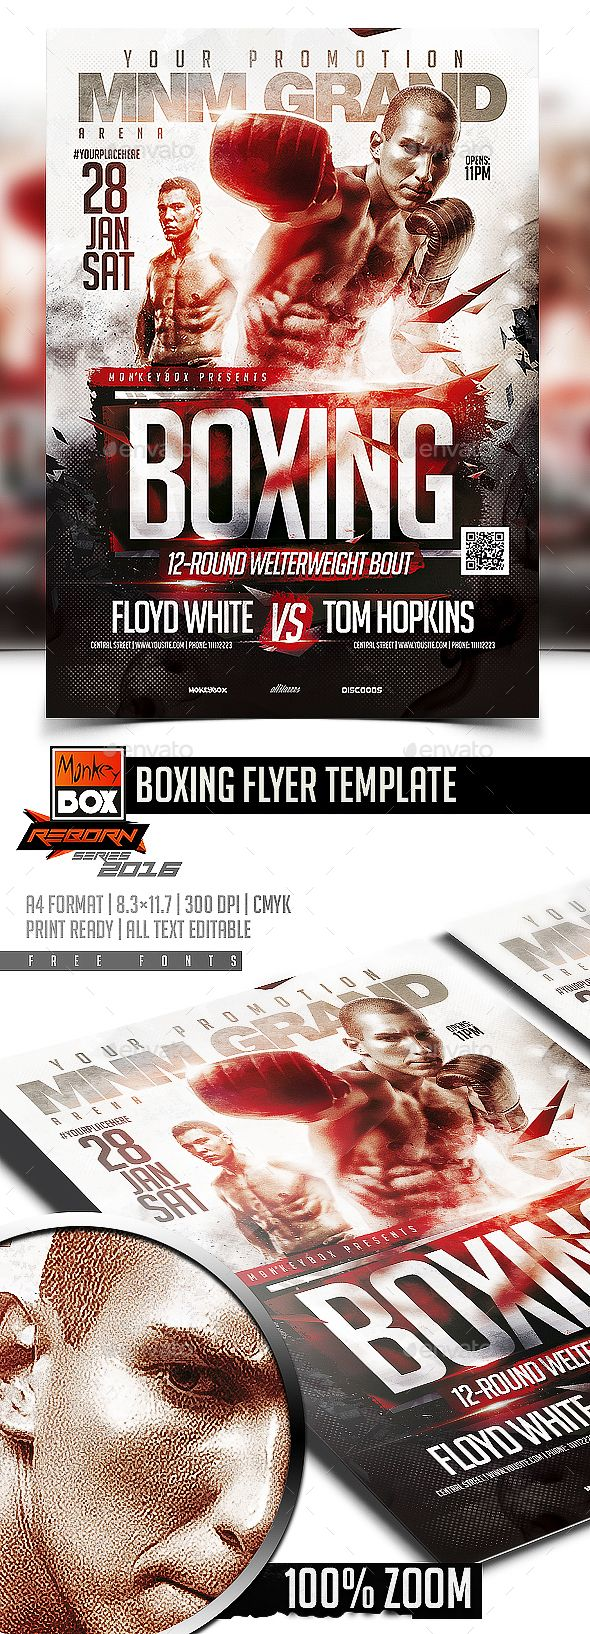 Boxing Flyer Template | Pinterest | Flyer template, Template and Fonts